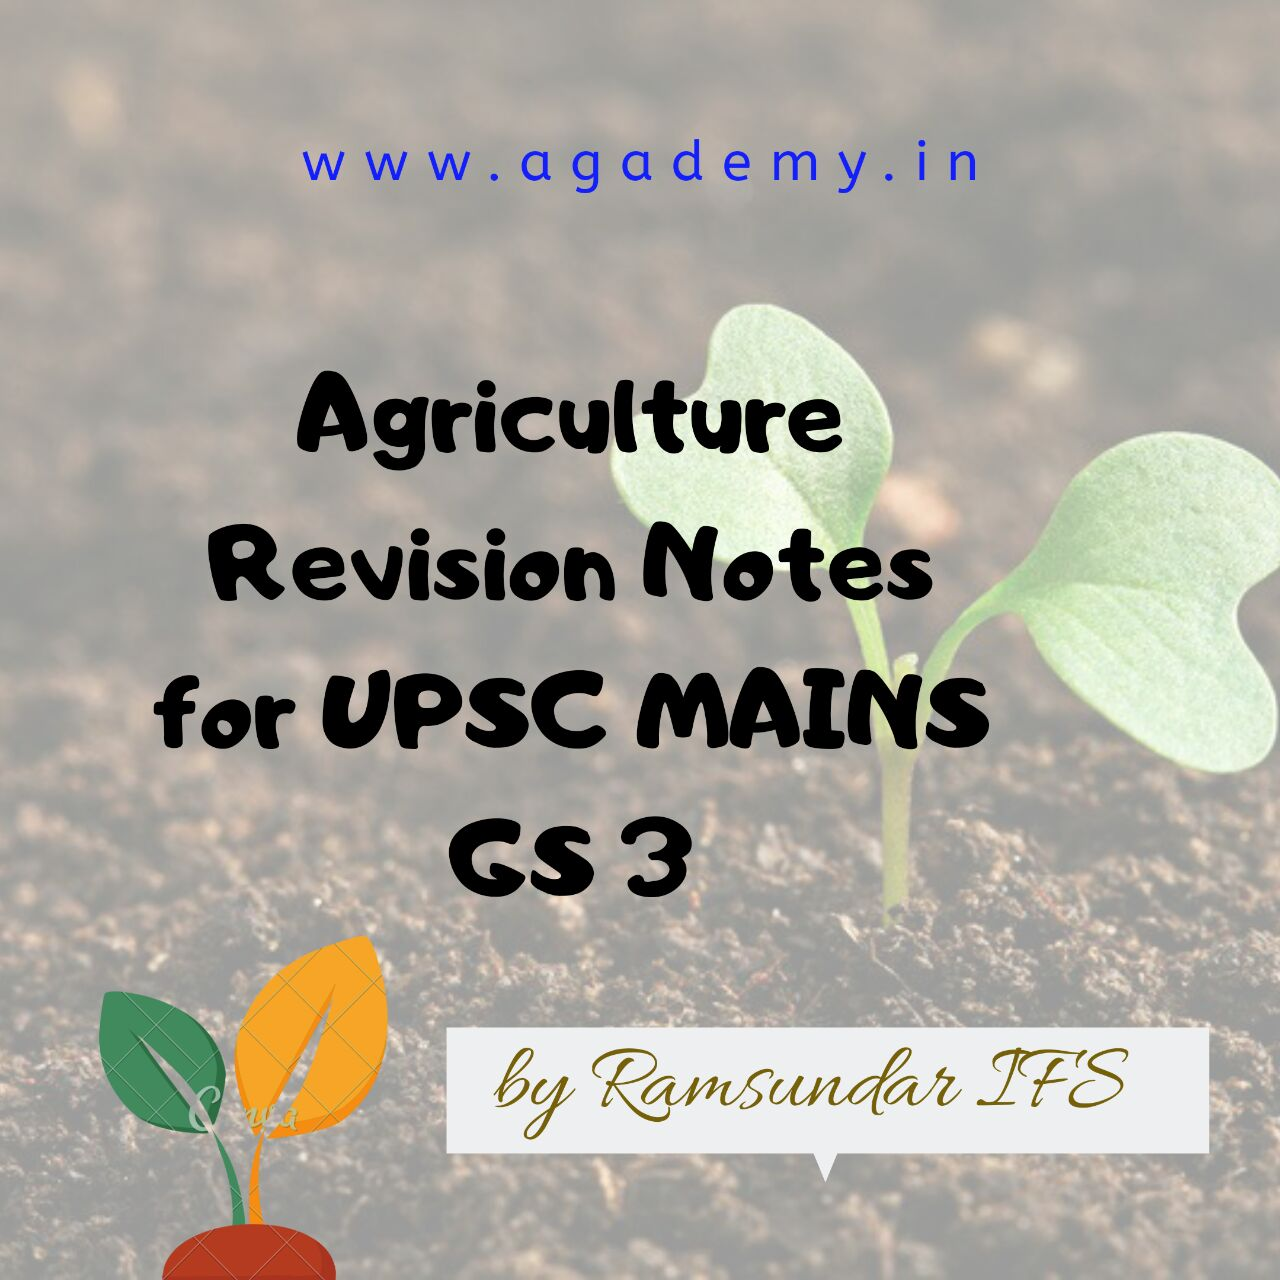 UPSC Mains GS 3 – Agriculture Topics Revision Material   2019